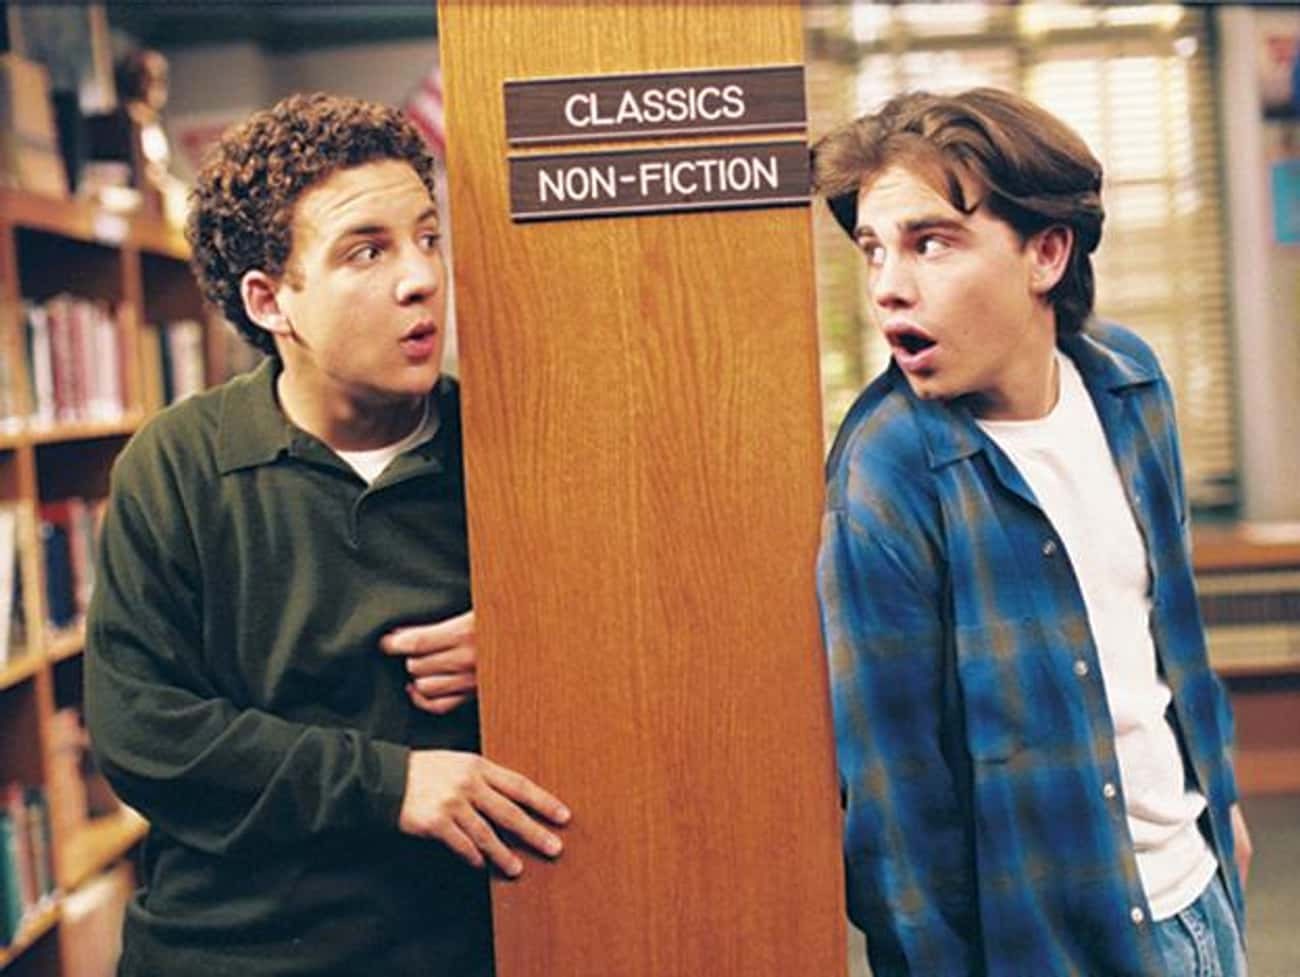 Cory Matthews & Shawn Hunter is listed (or ranked) 1 on the list The Greatest Sets of BFFs in All of '90s TV